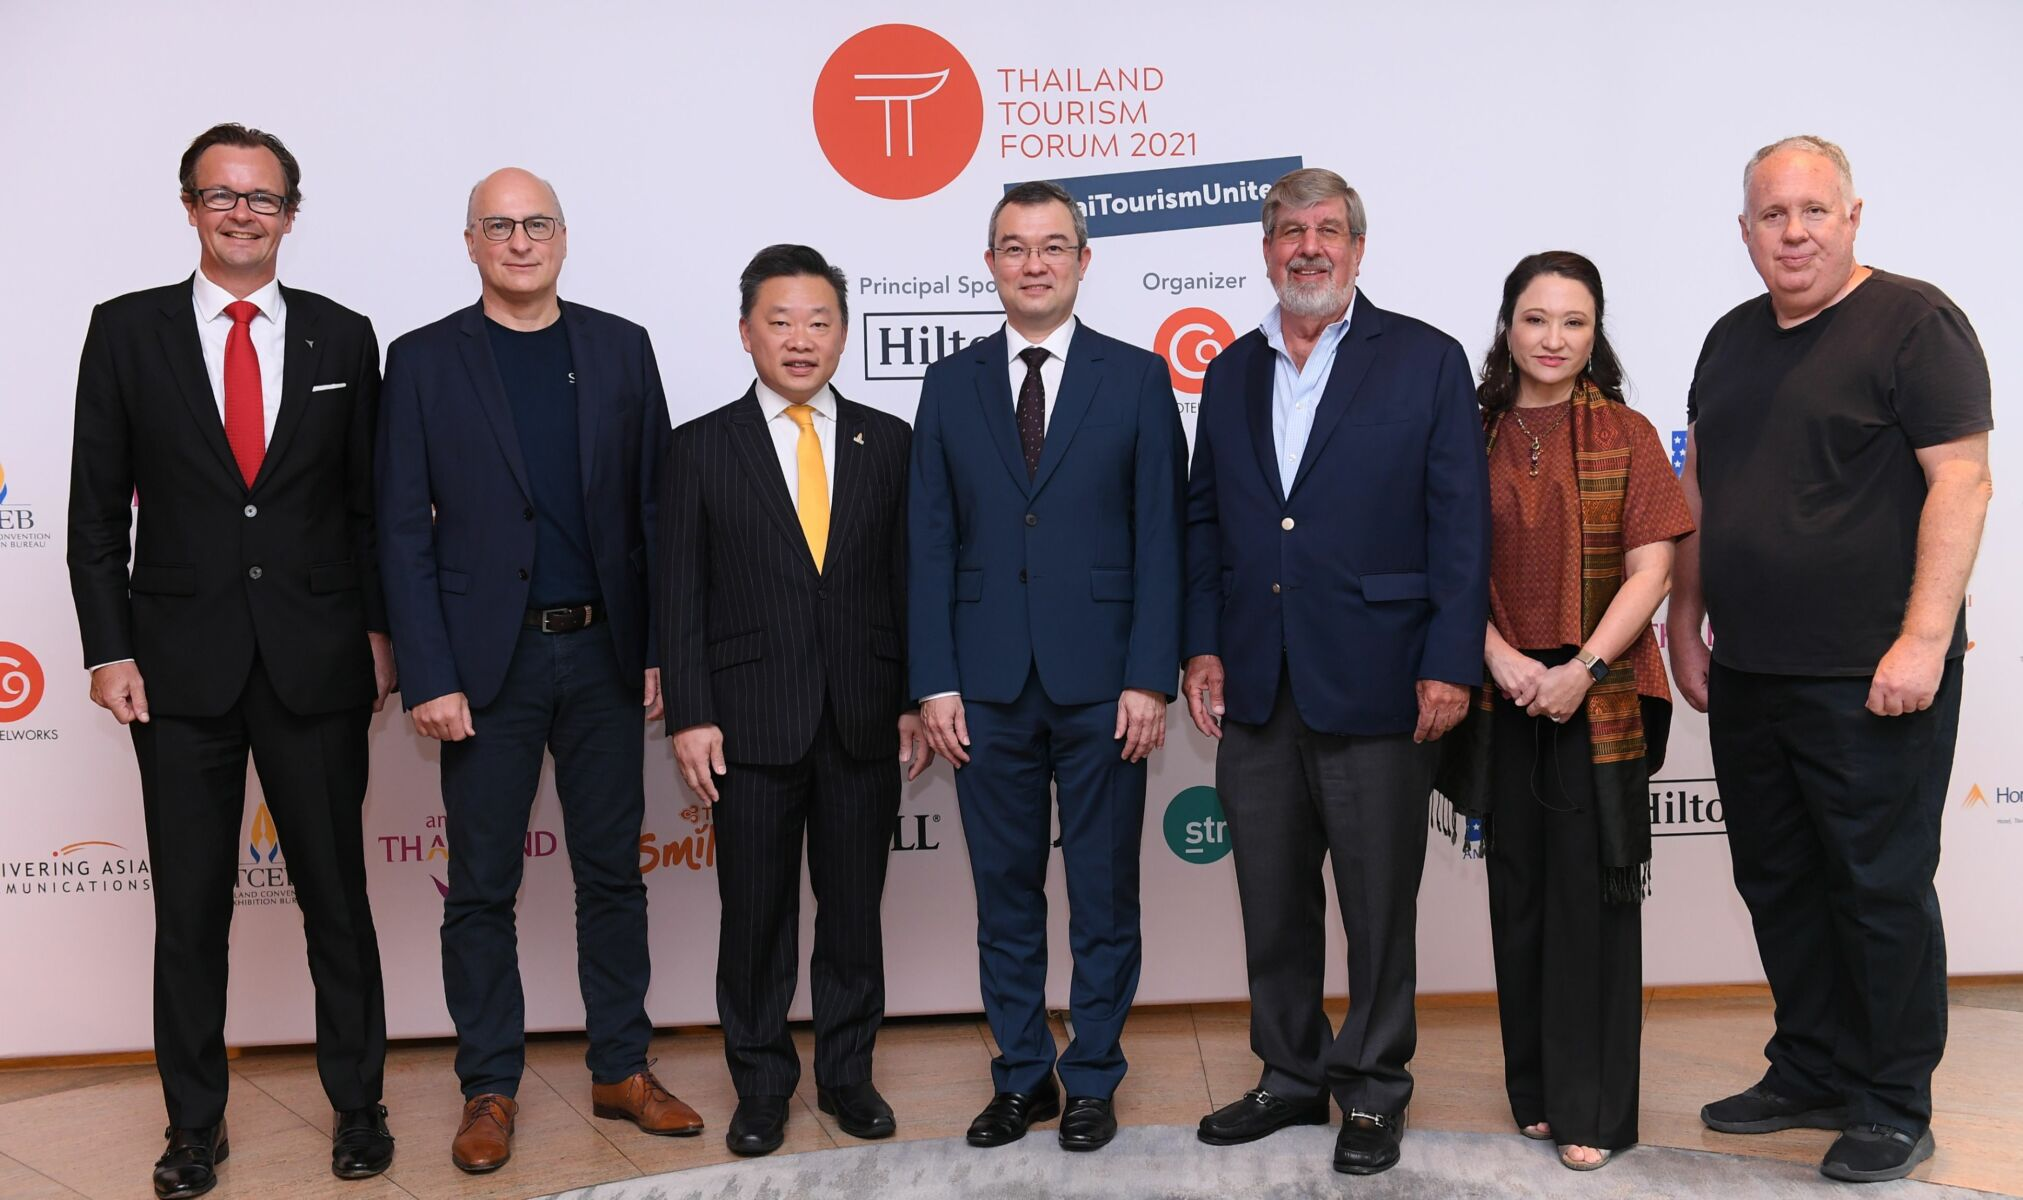 Thailand tourism leaders come together to discuss the industry's future | Thaiger